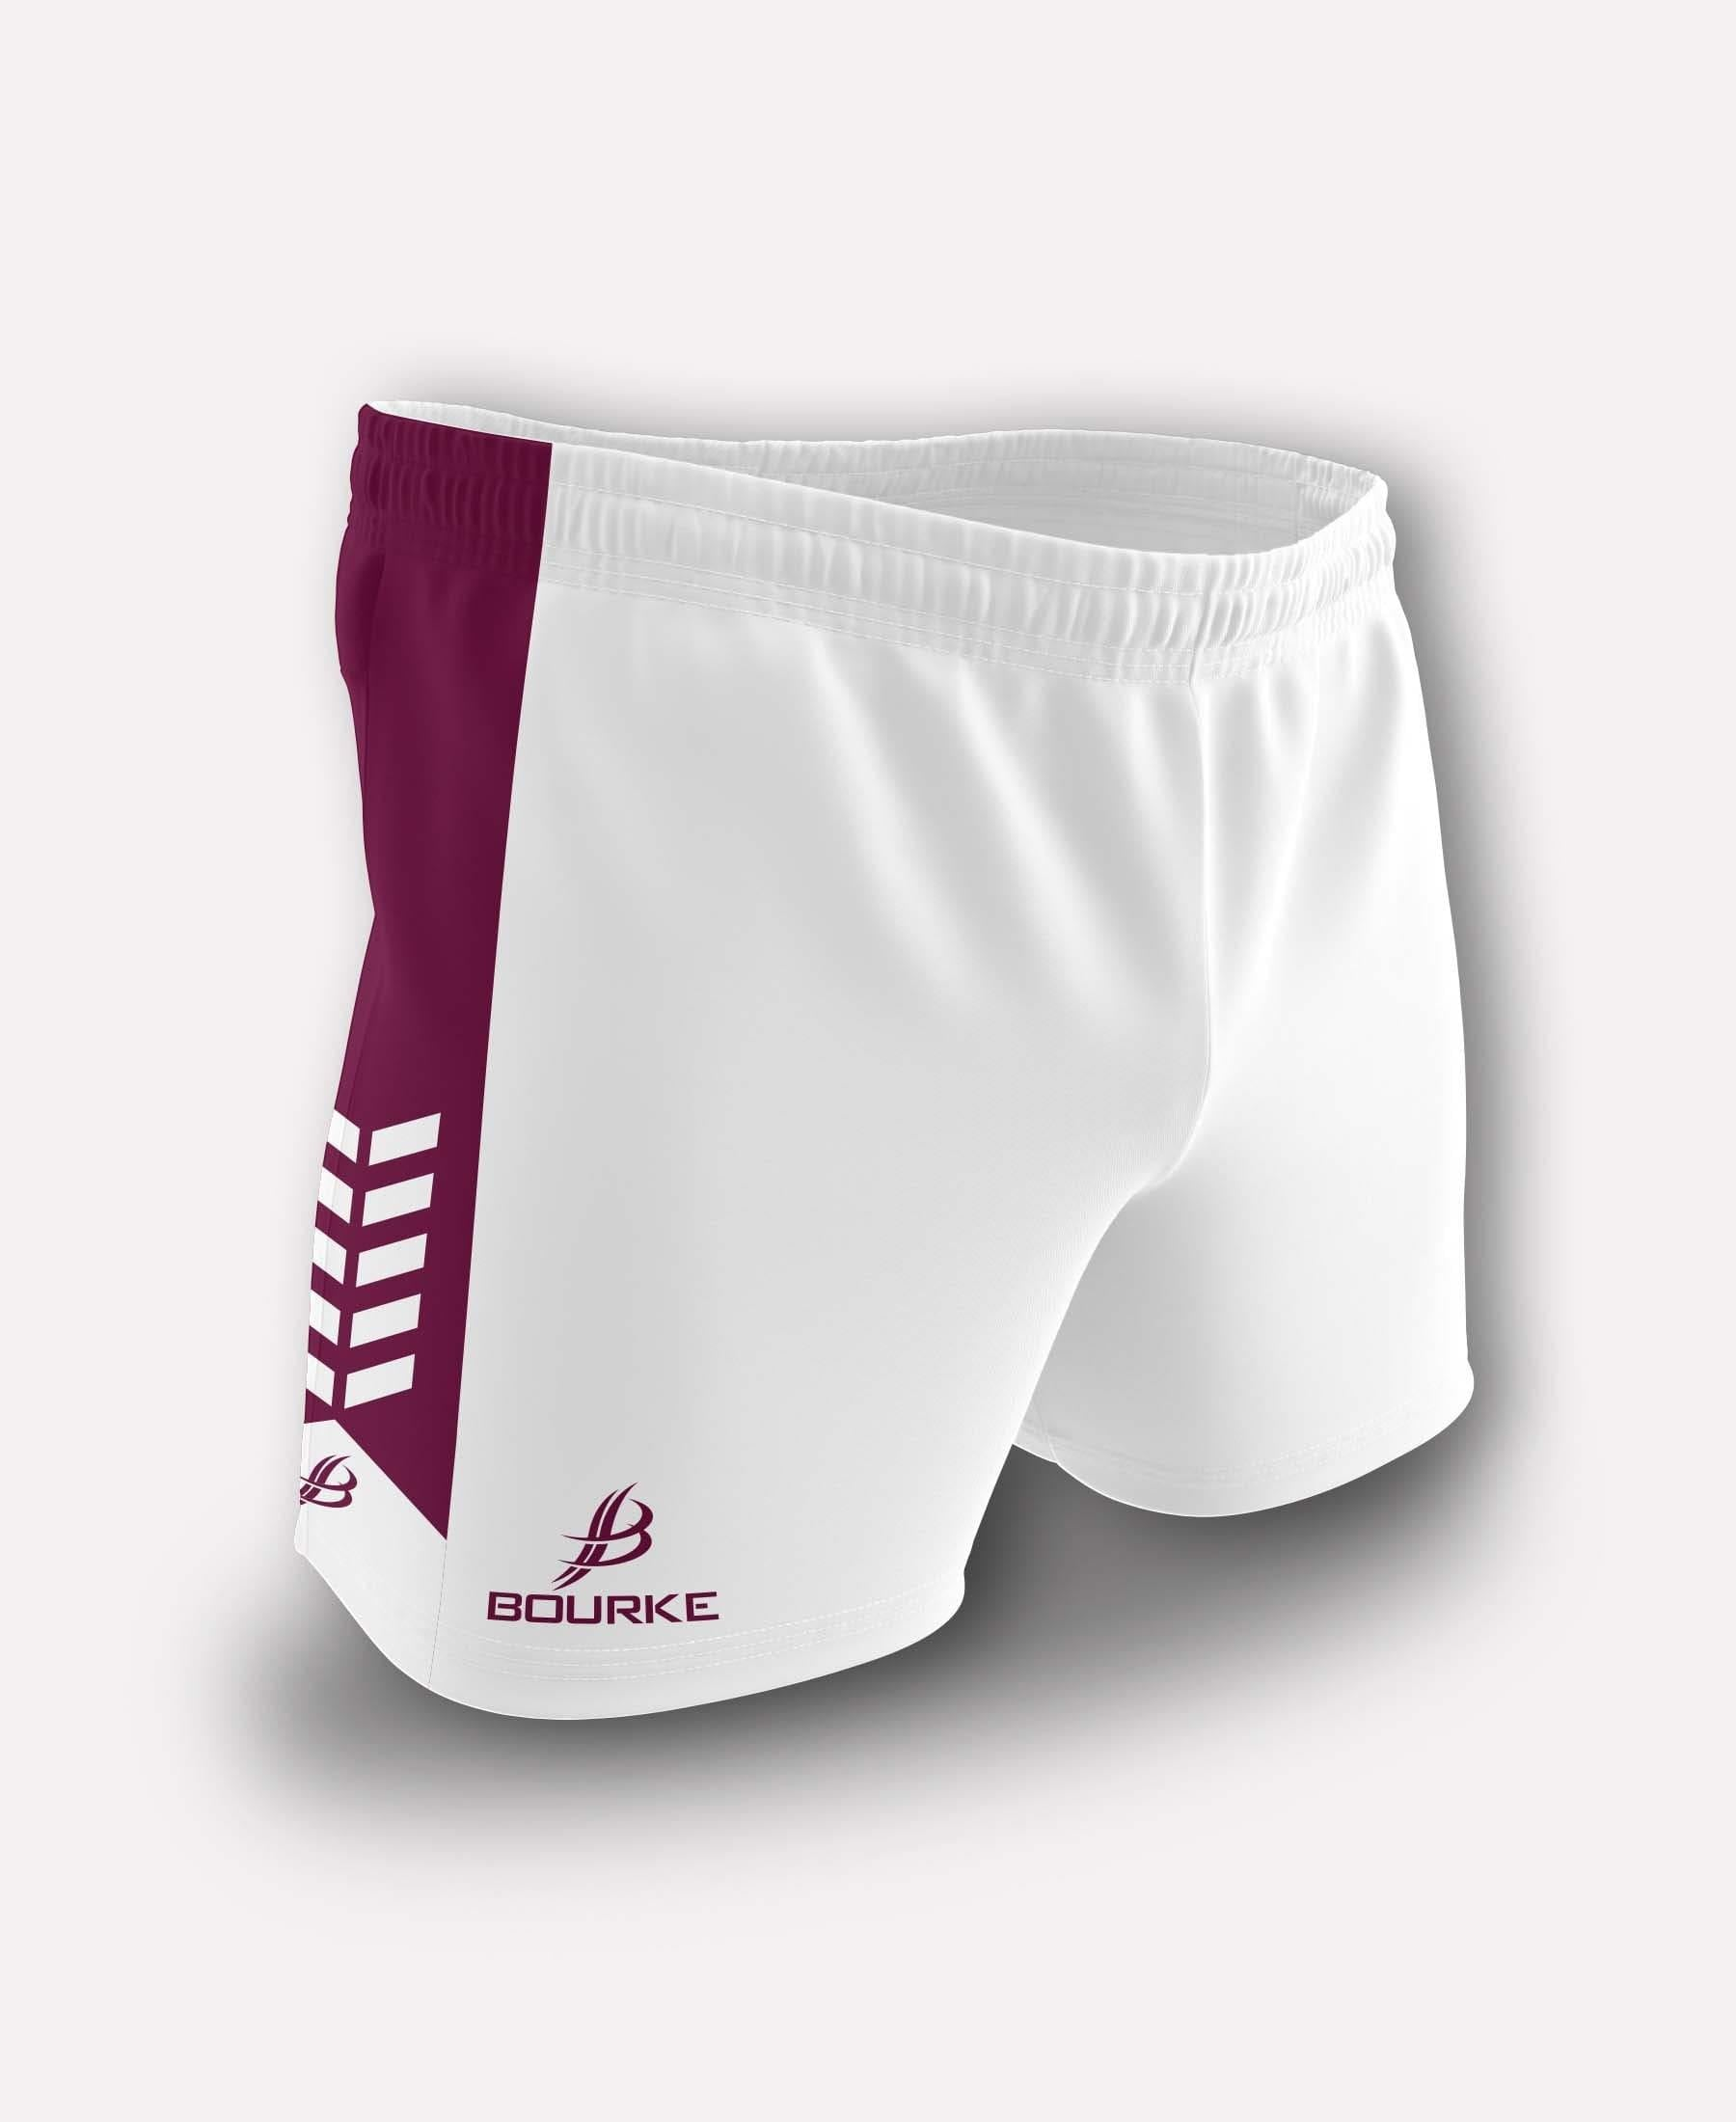 Chevron Kids Shorts (White/Maroon) - Bourke Sports Limited